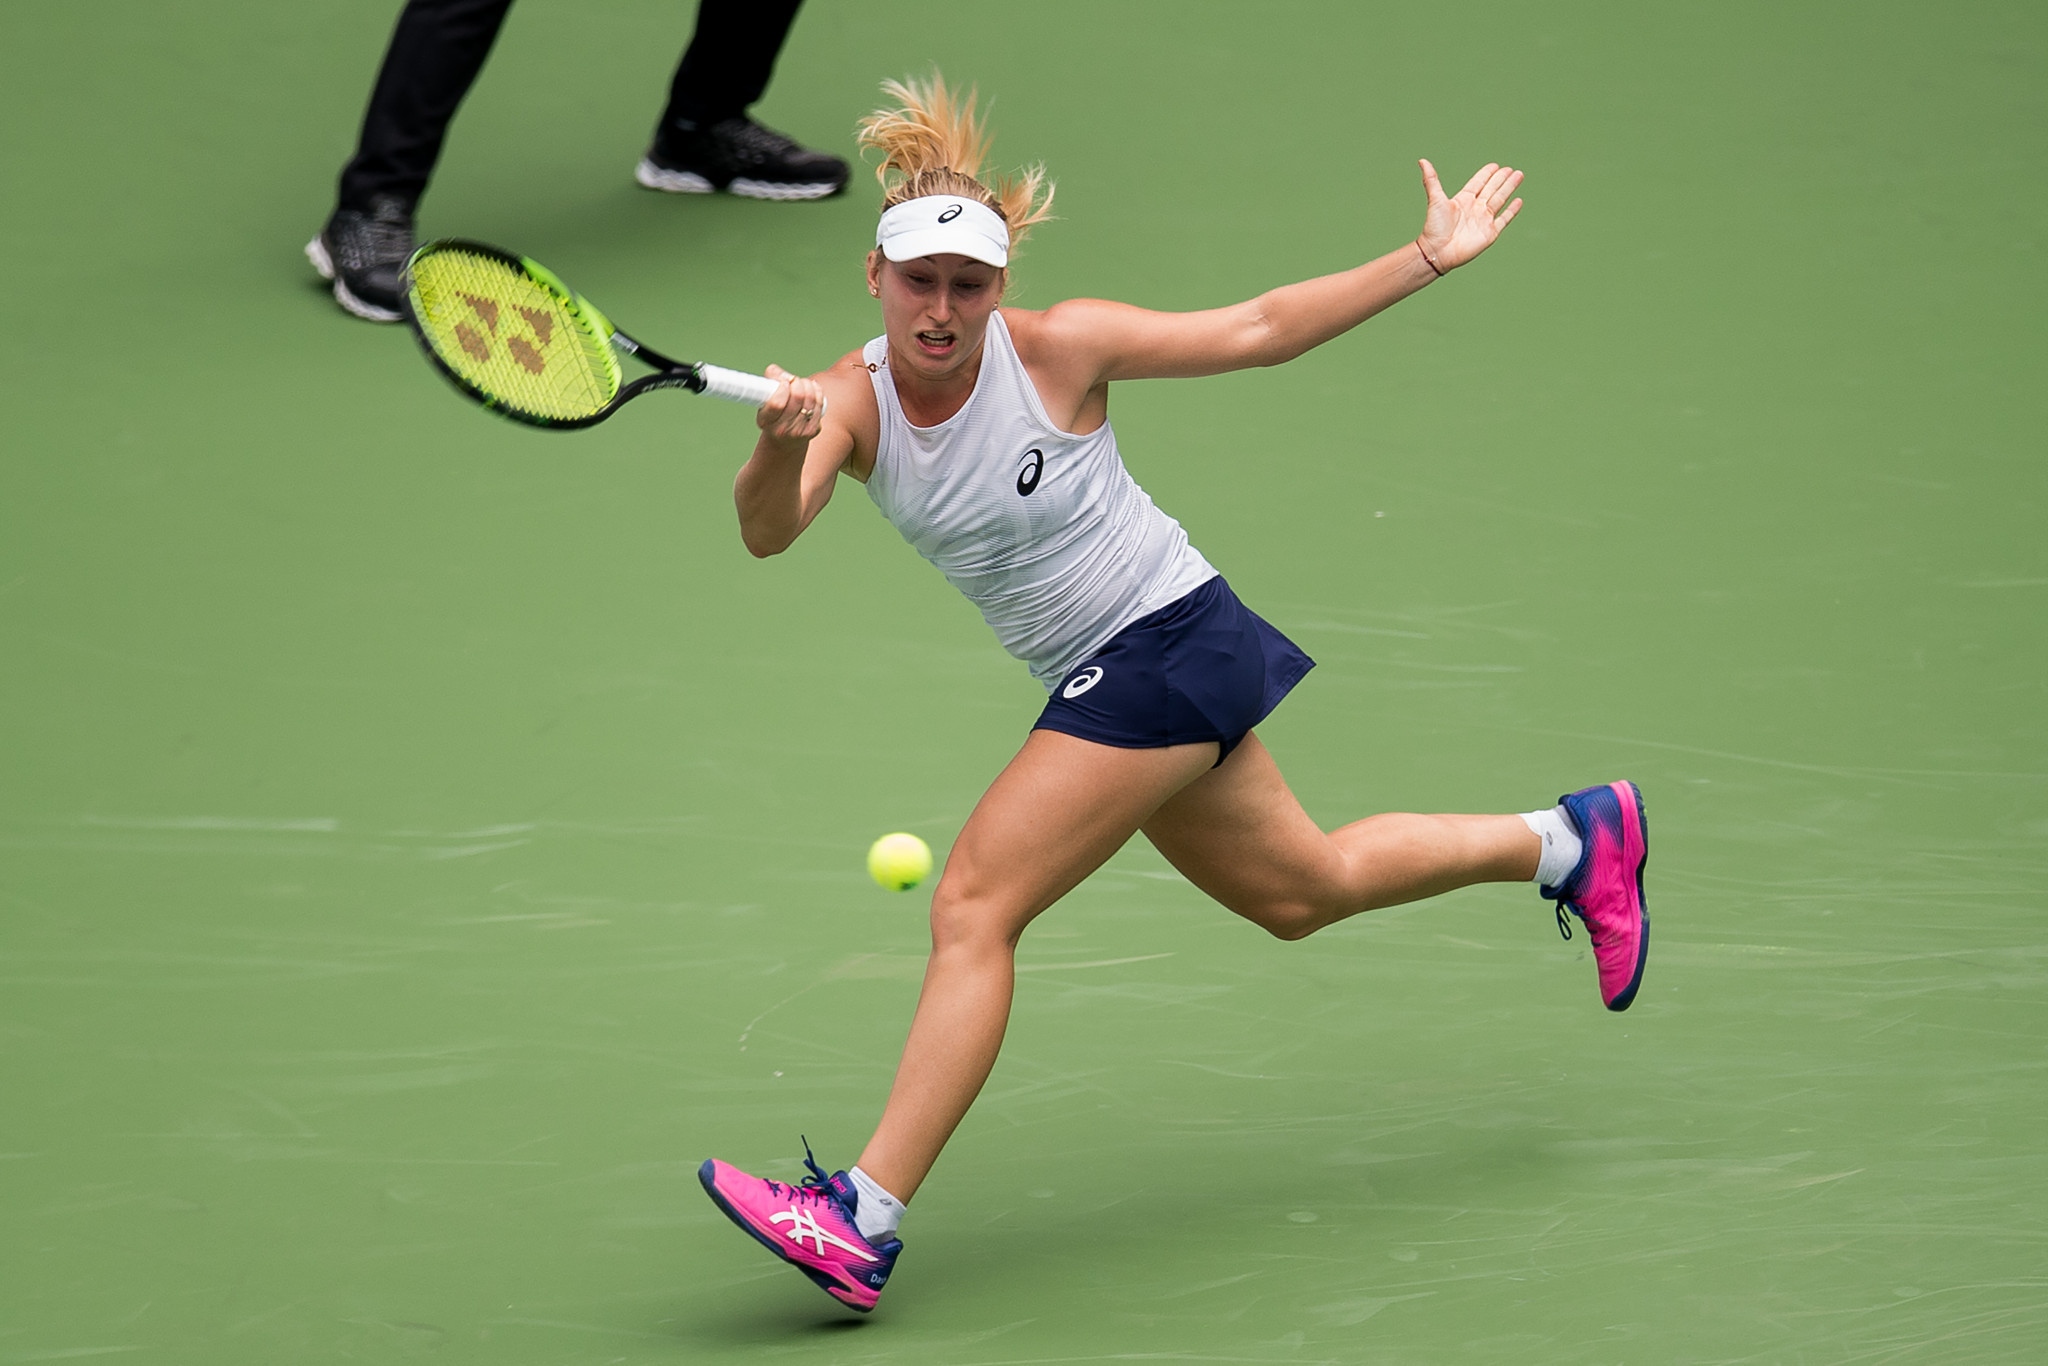 Australian Daria Gavrilova stunned 2017 French Open champion and 10th seed Jelena Ostapenko of Latvia to reach the second round ©Getty Images